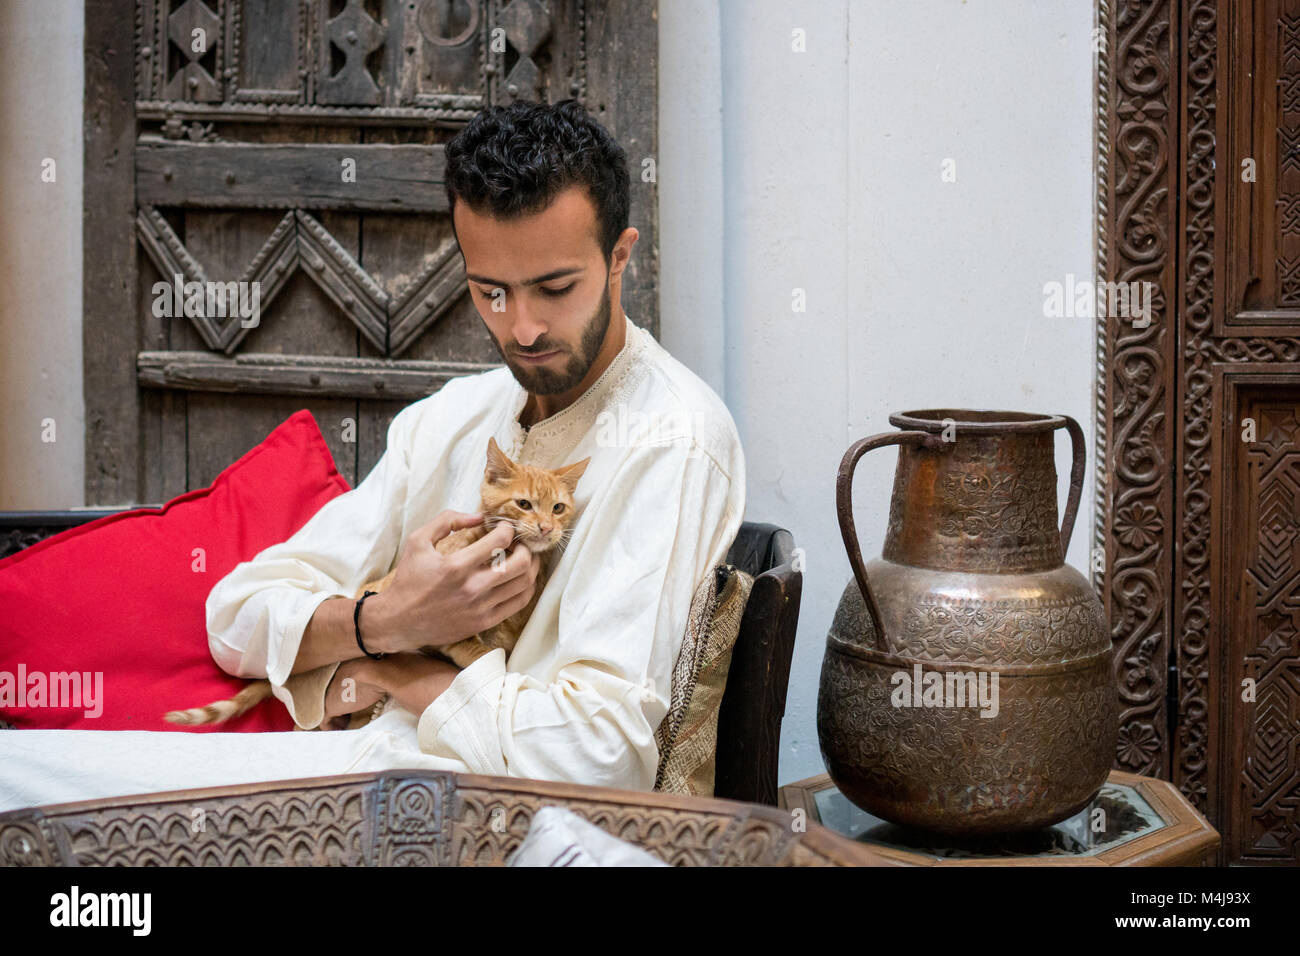 Jeune homme en costume traditionnel musulman tenant un chat jaune devant un mur décoré Photo Stock